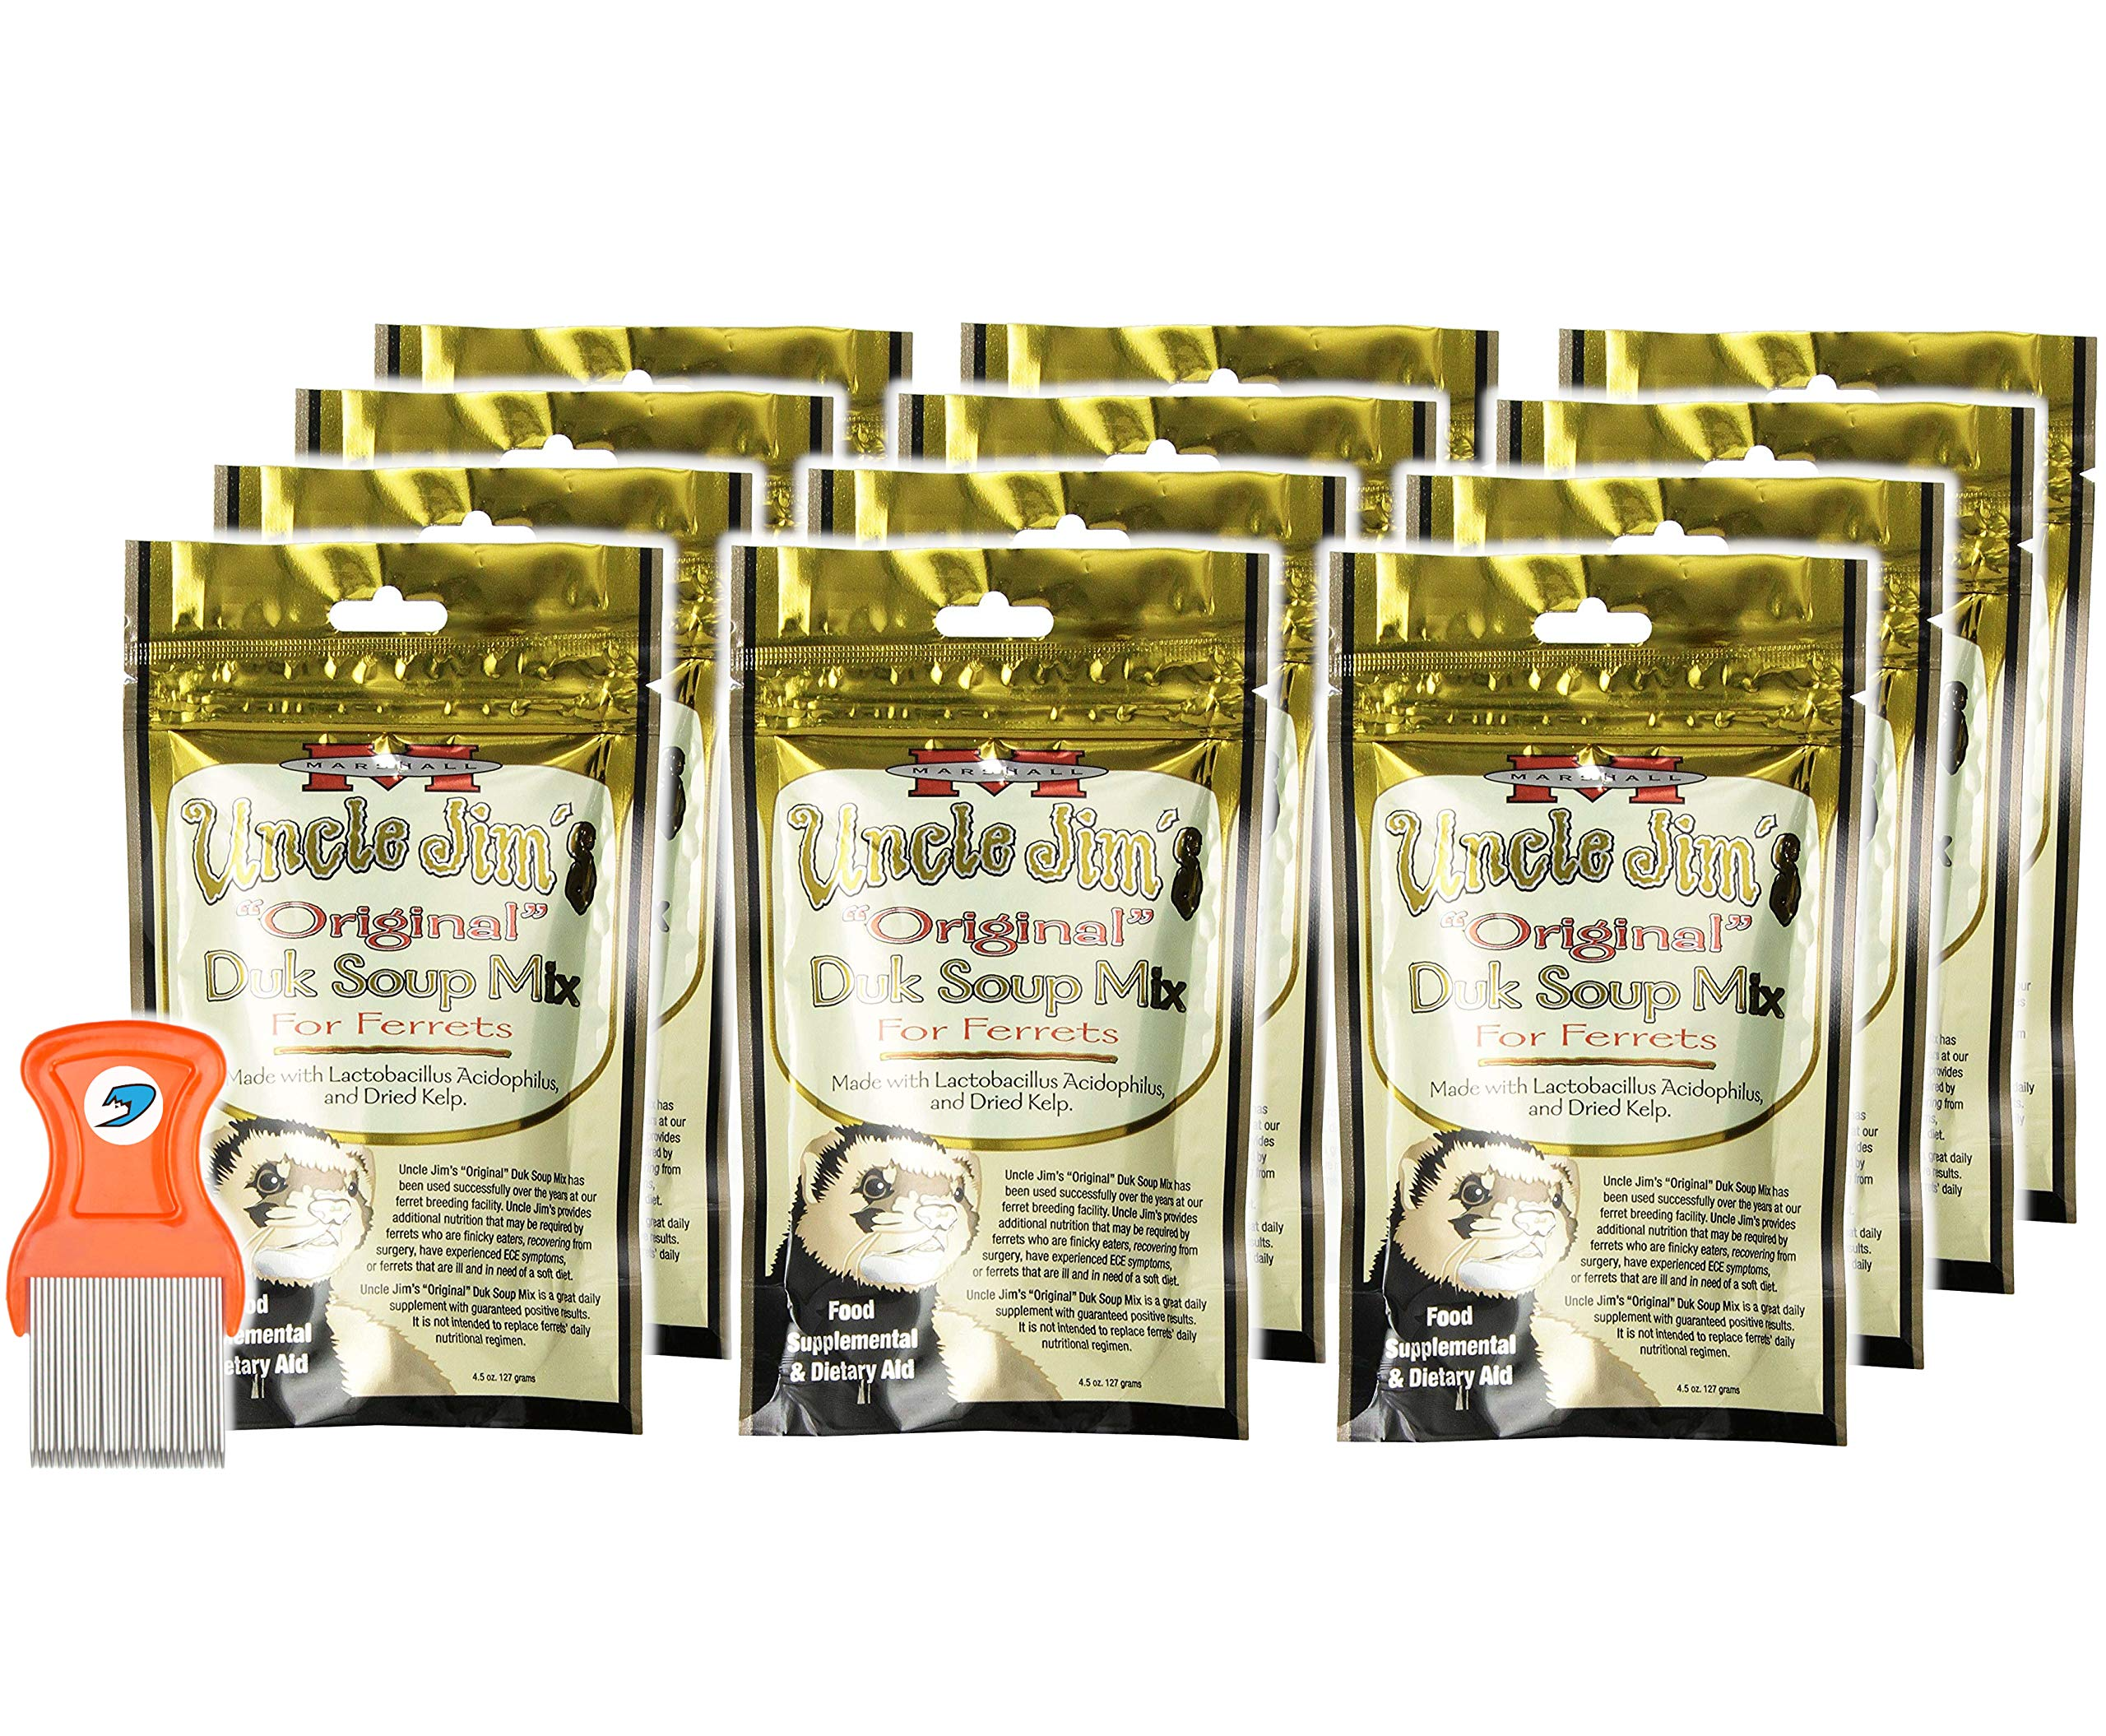 Pack of 12 - Uncle Jim's Original DUK Soup Mix by Marshall - Ferret Food Supplement and Dietary Aid - RandStar Mini Comb by Marshall Pet Products (Image #1)